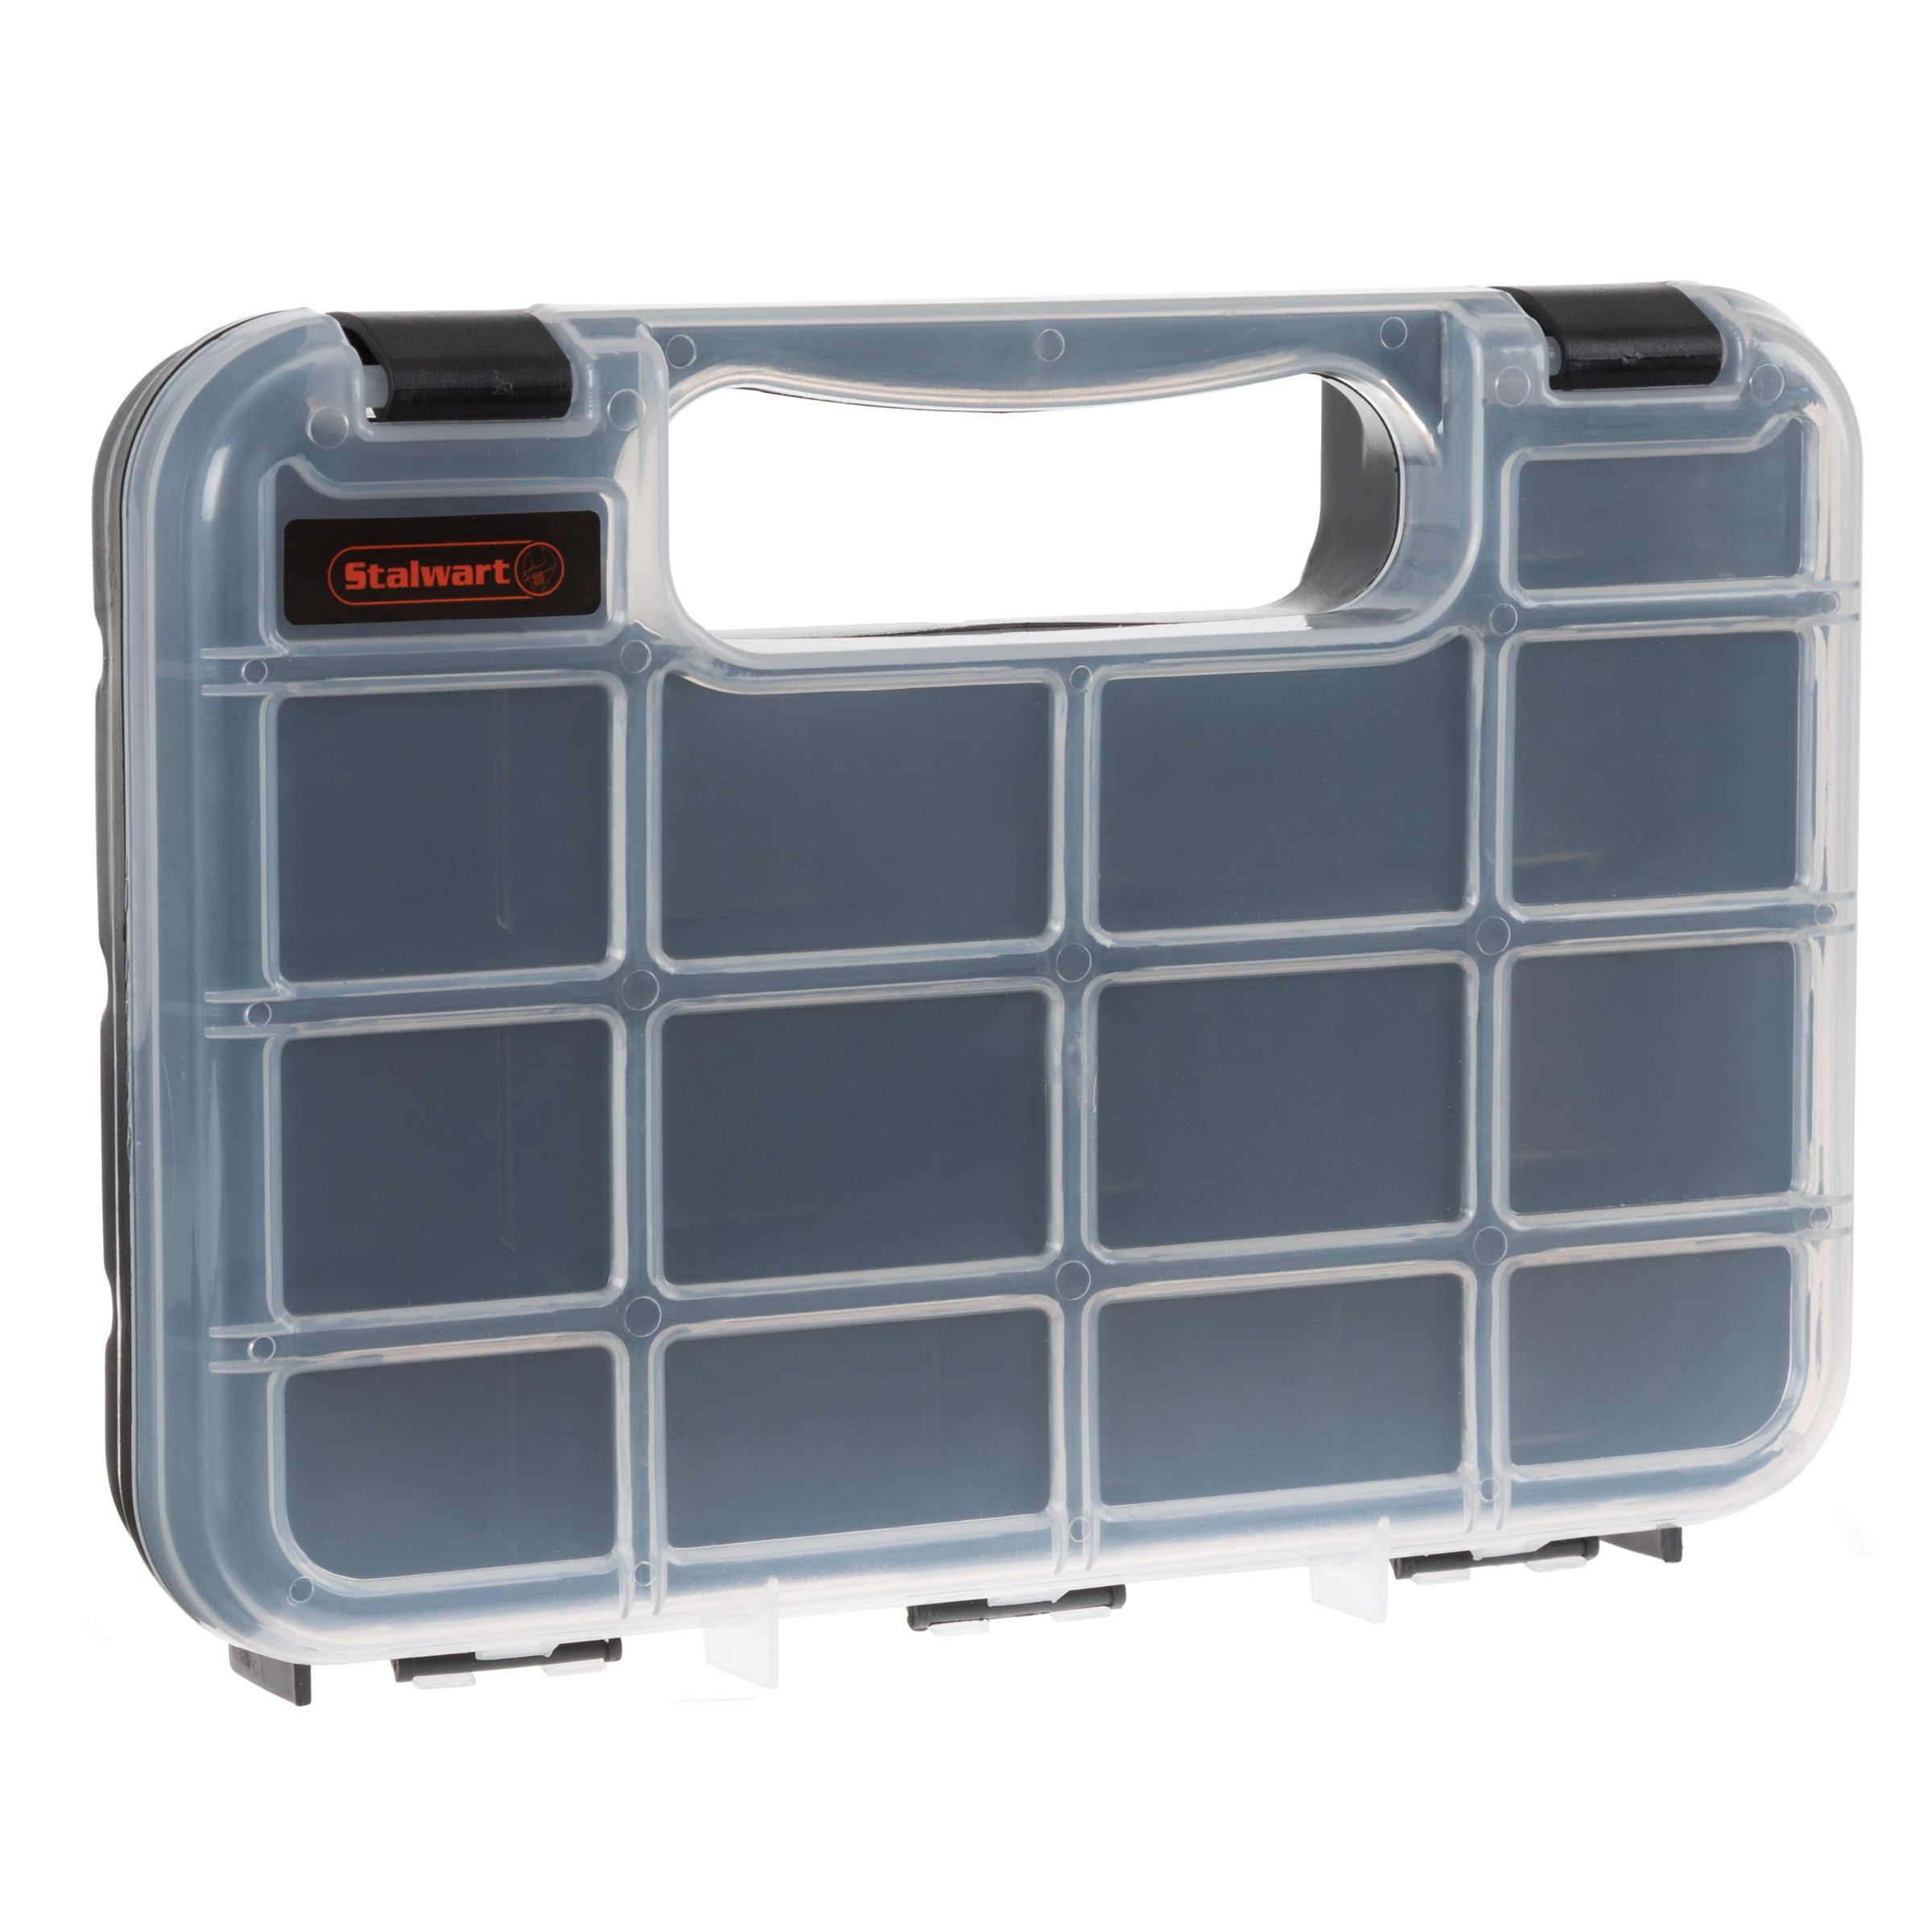 Portable Storage Case with Secure Locks and 14 Small Bin Compartments for Hardware, Screws, Bolts, Nuts, Nails, Beads, Jewelry and More by Stalwart